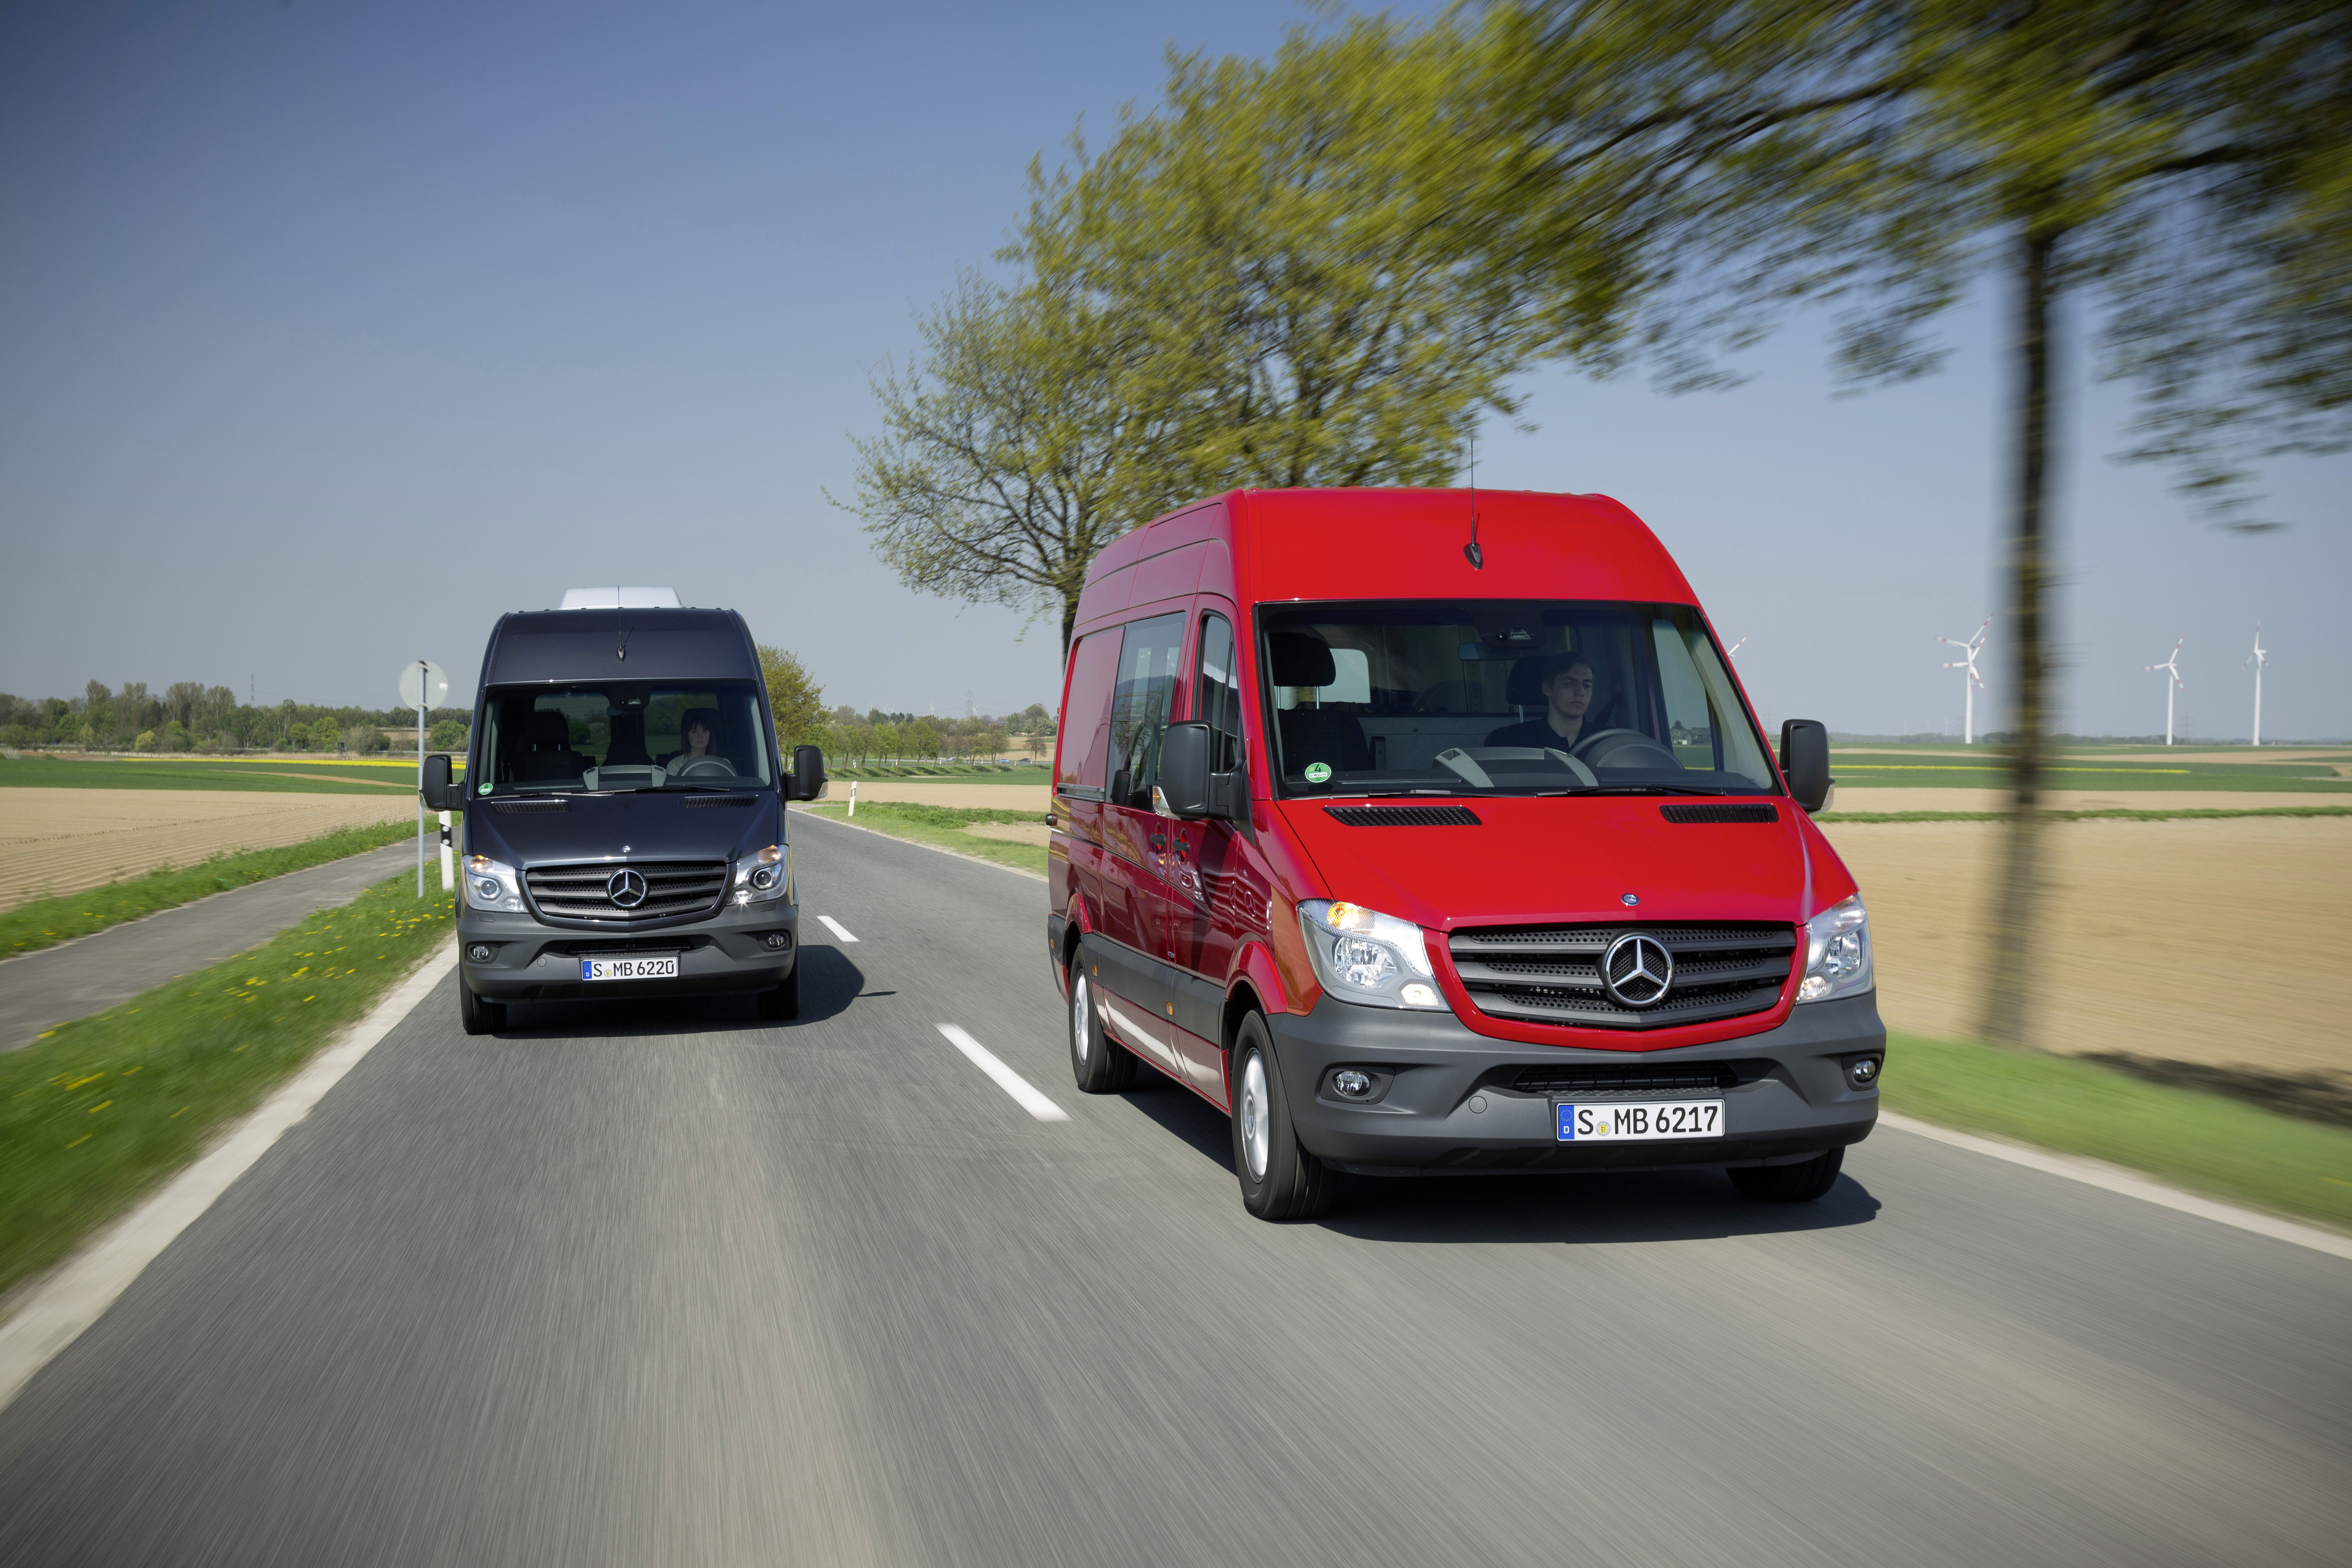 Mercedes benz bolsters commercial van lineup truck news for Mercedes benz commercial trucks